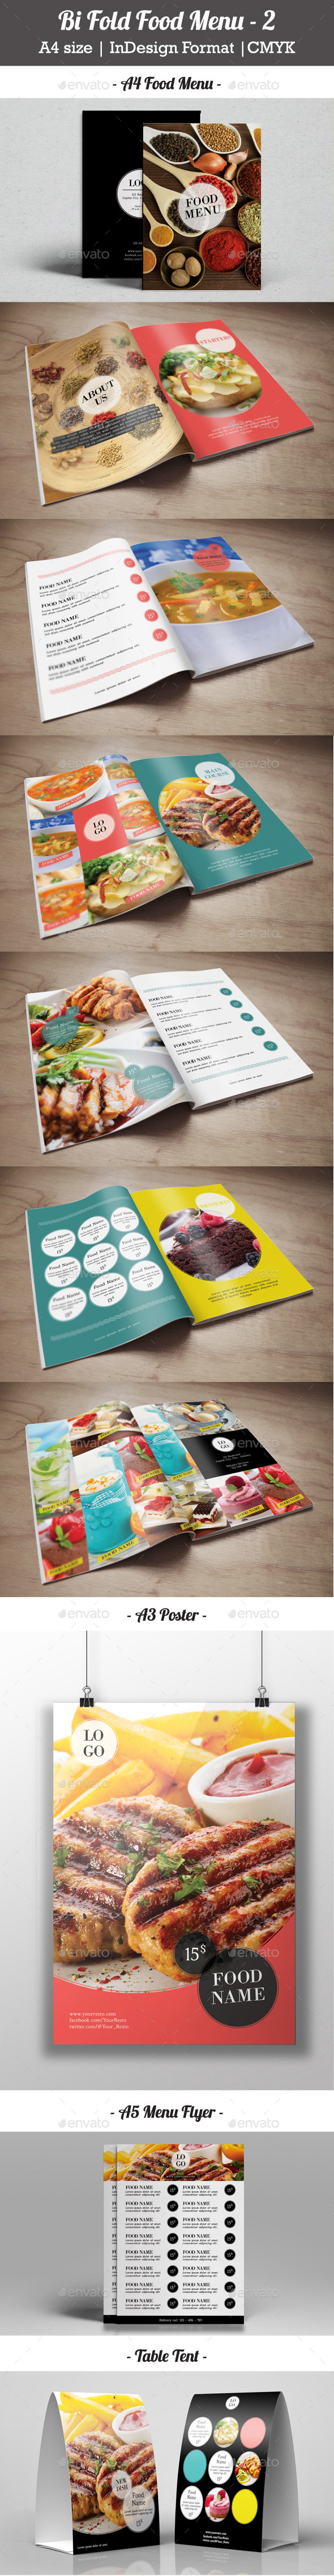 GraphicRiver Bi Fold Food Menu 2 9412594